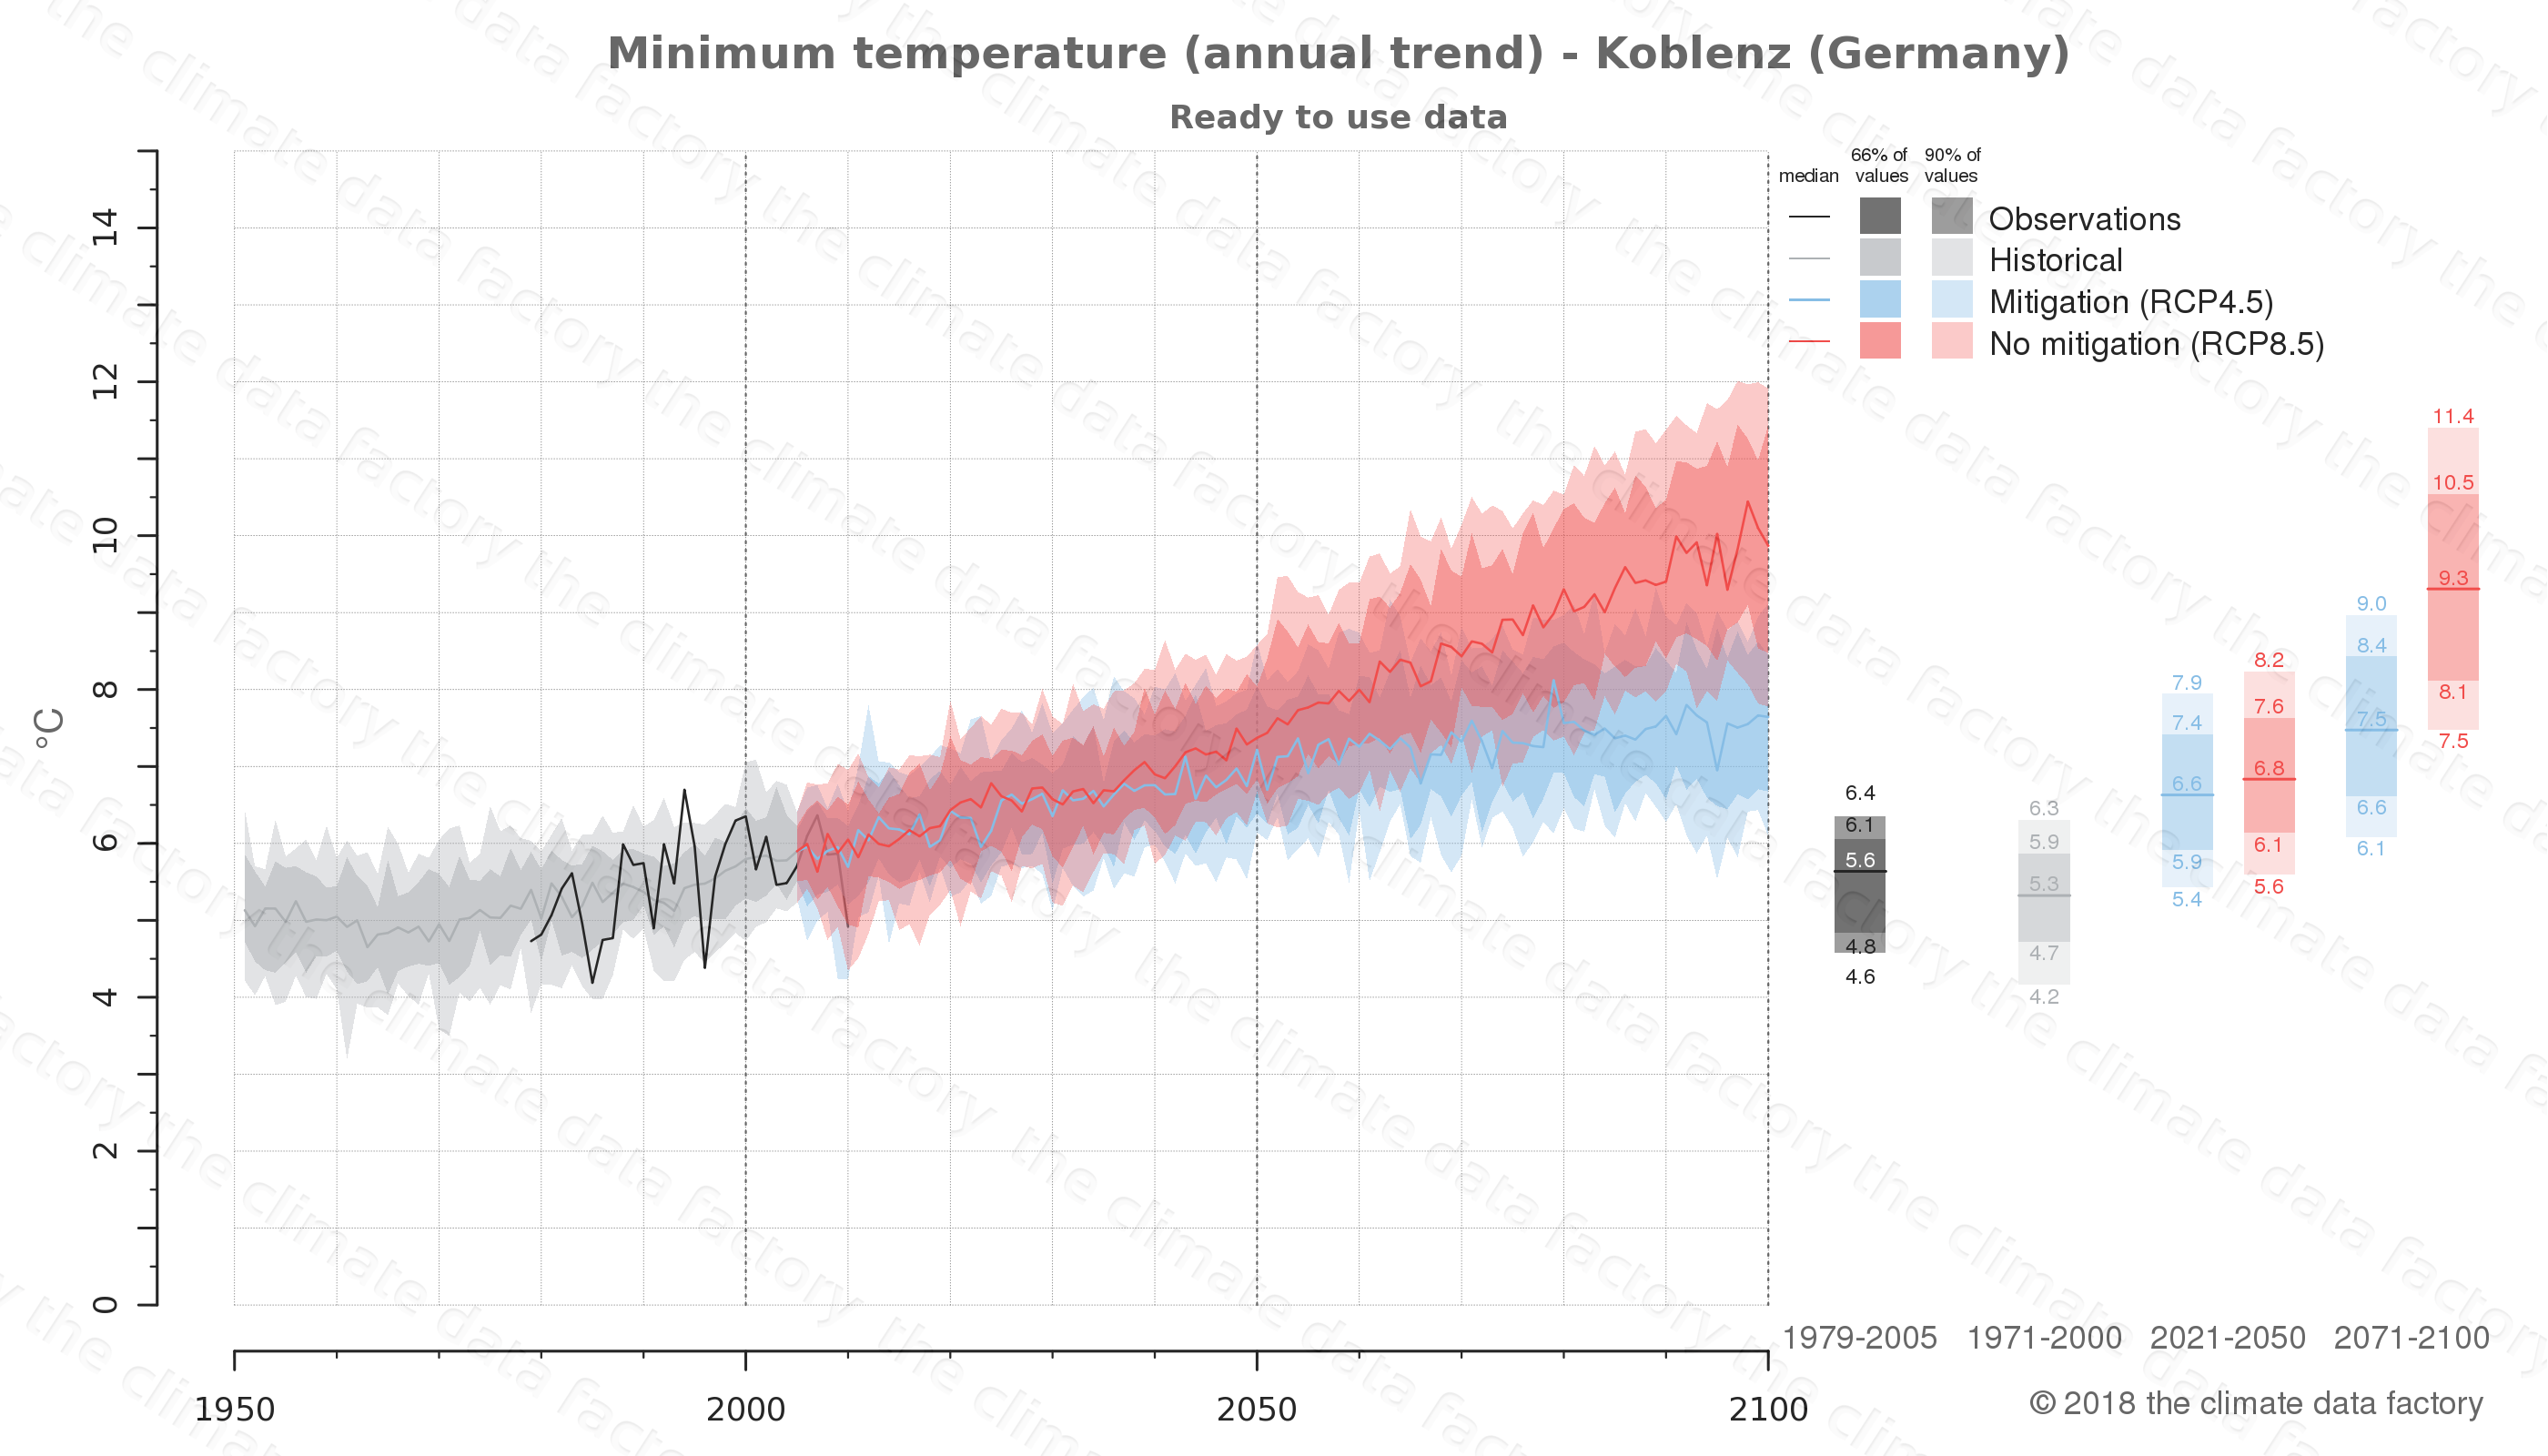 climate change data policy adaptation climate graph city data minimum-temperature koblenz germany